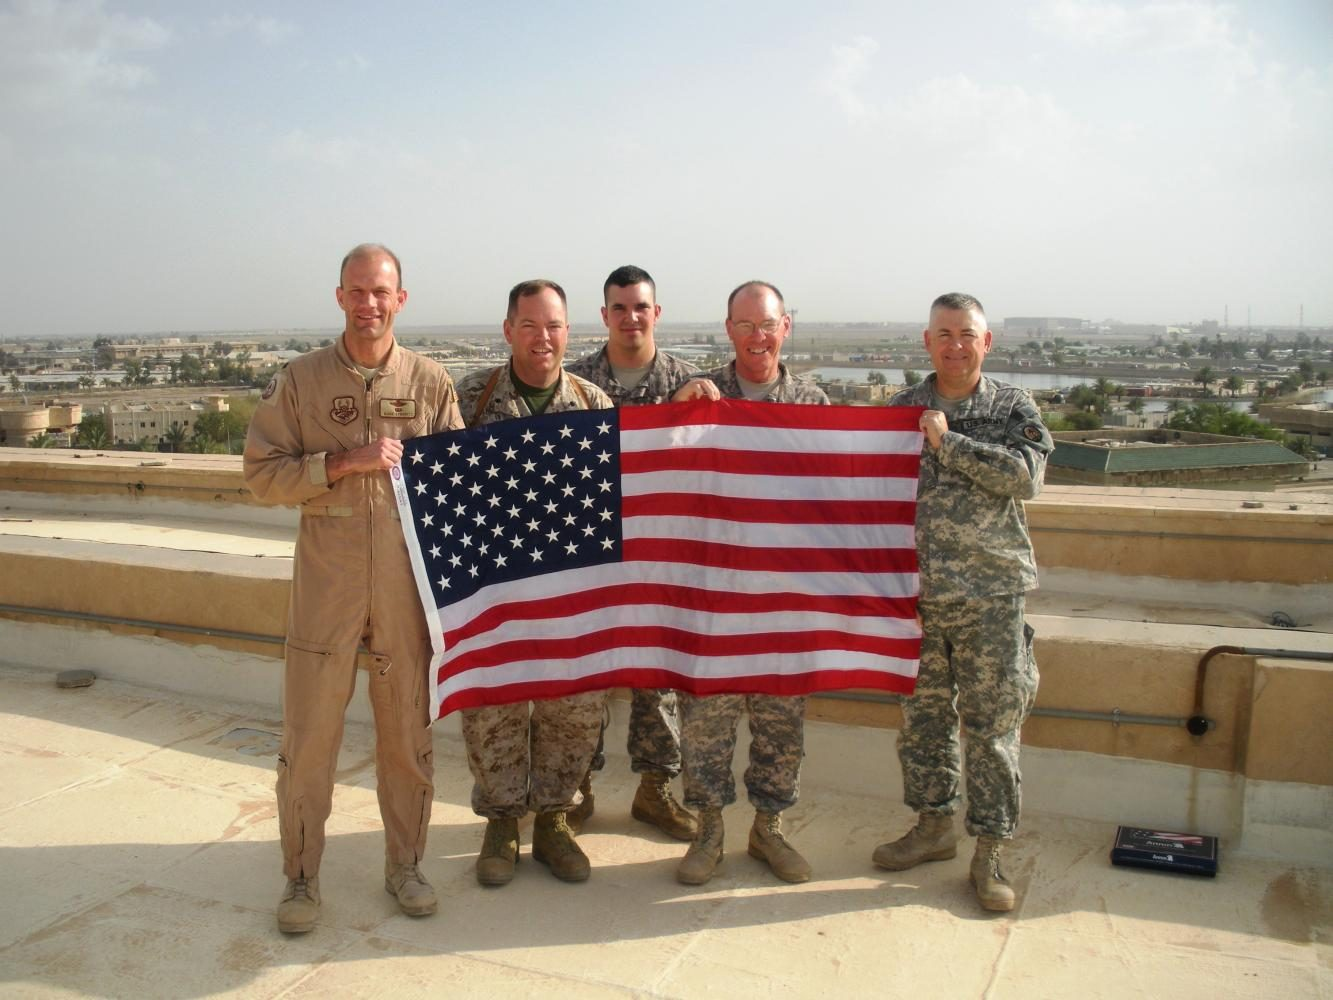 Bob Knuth stands with his fellow soldiers and the United States Flag. Knuth spent 37 years in the US Army.